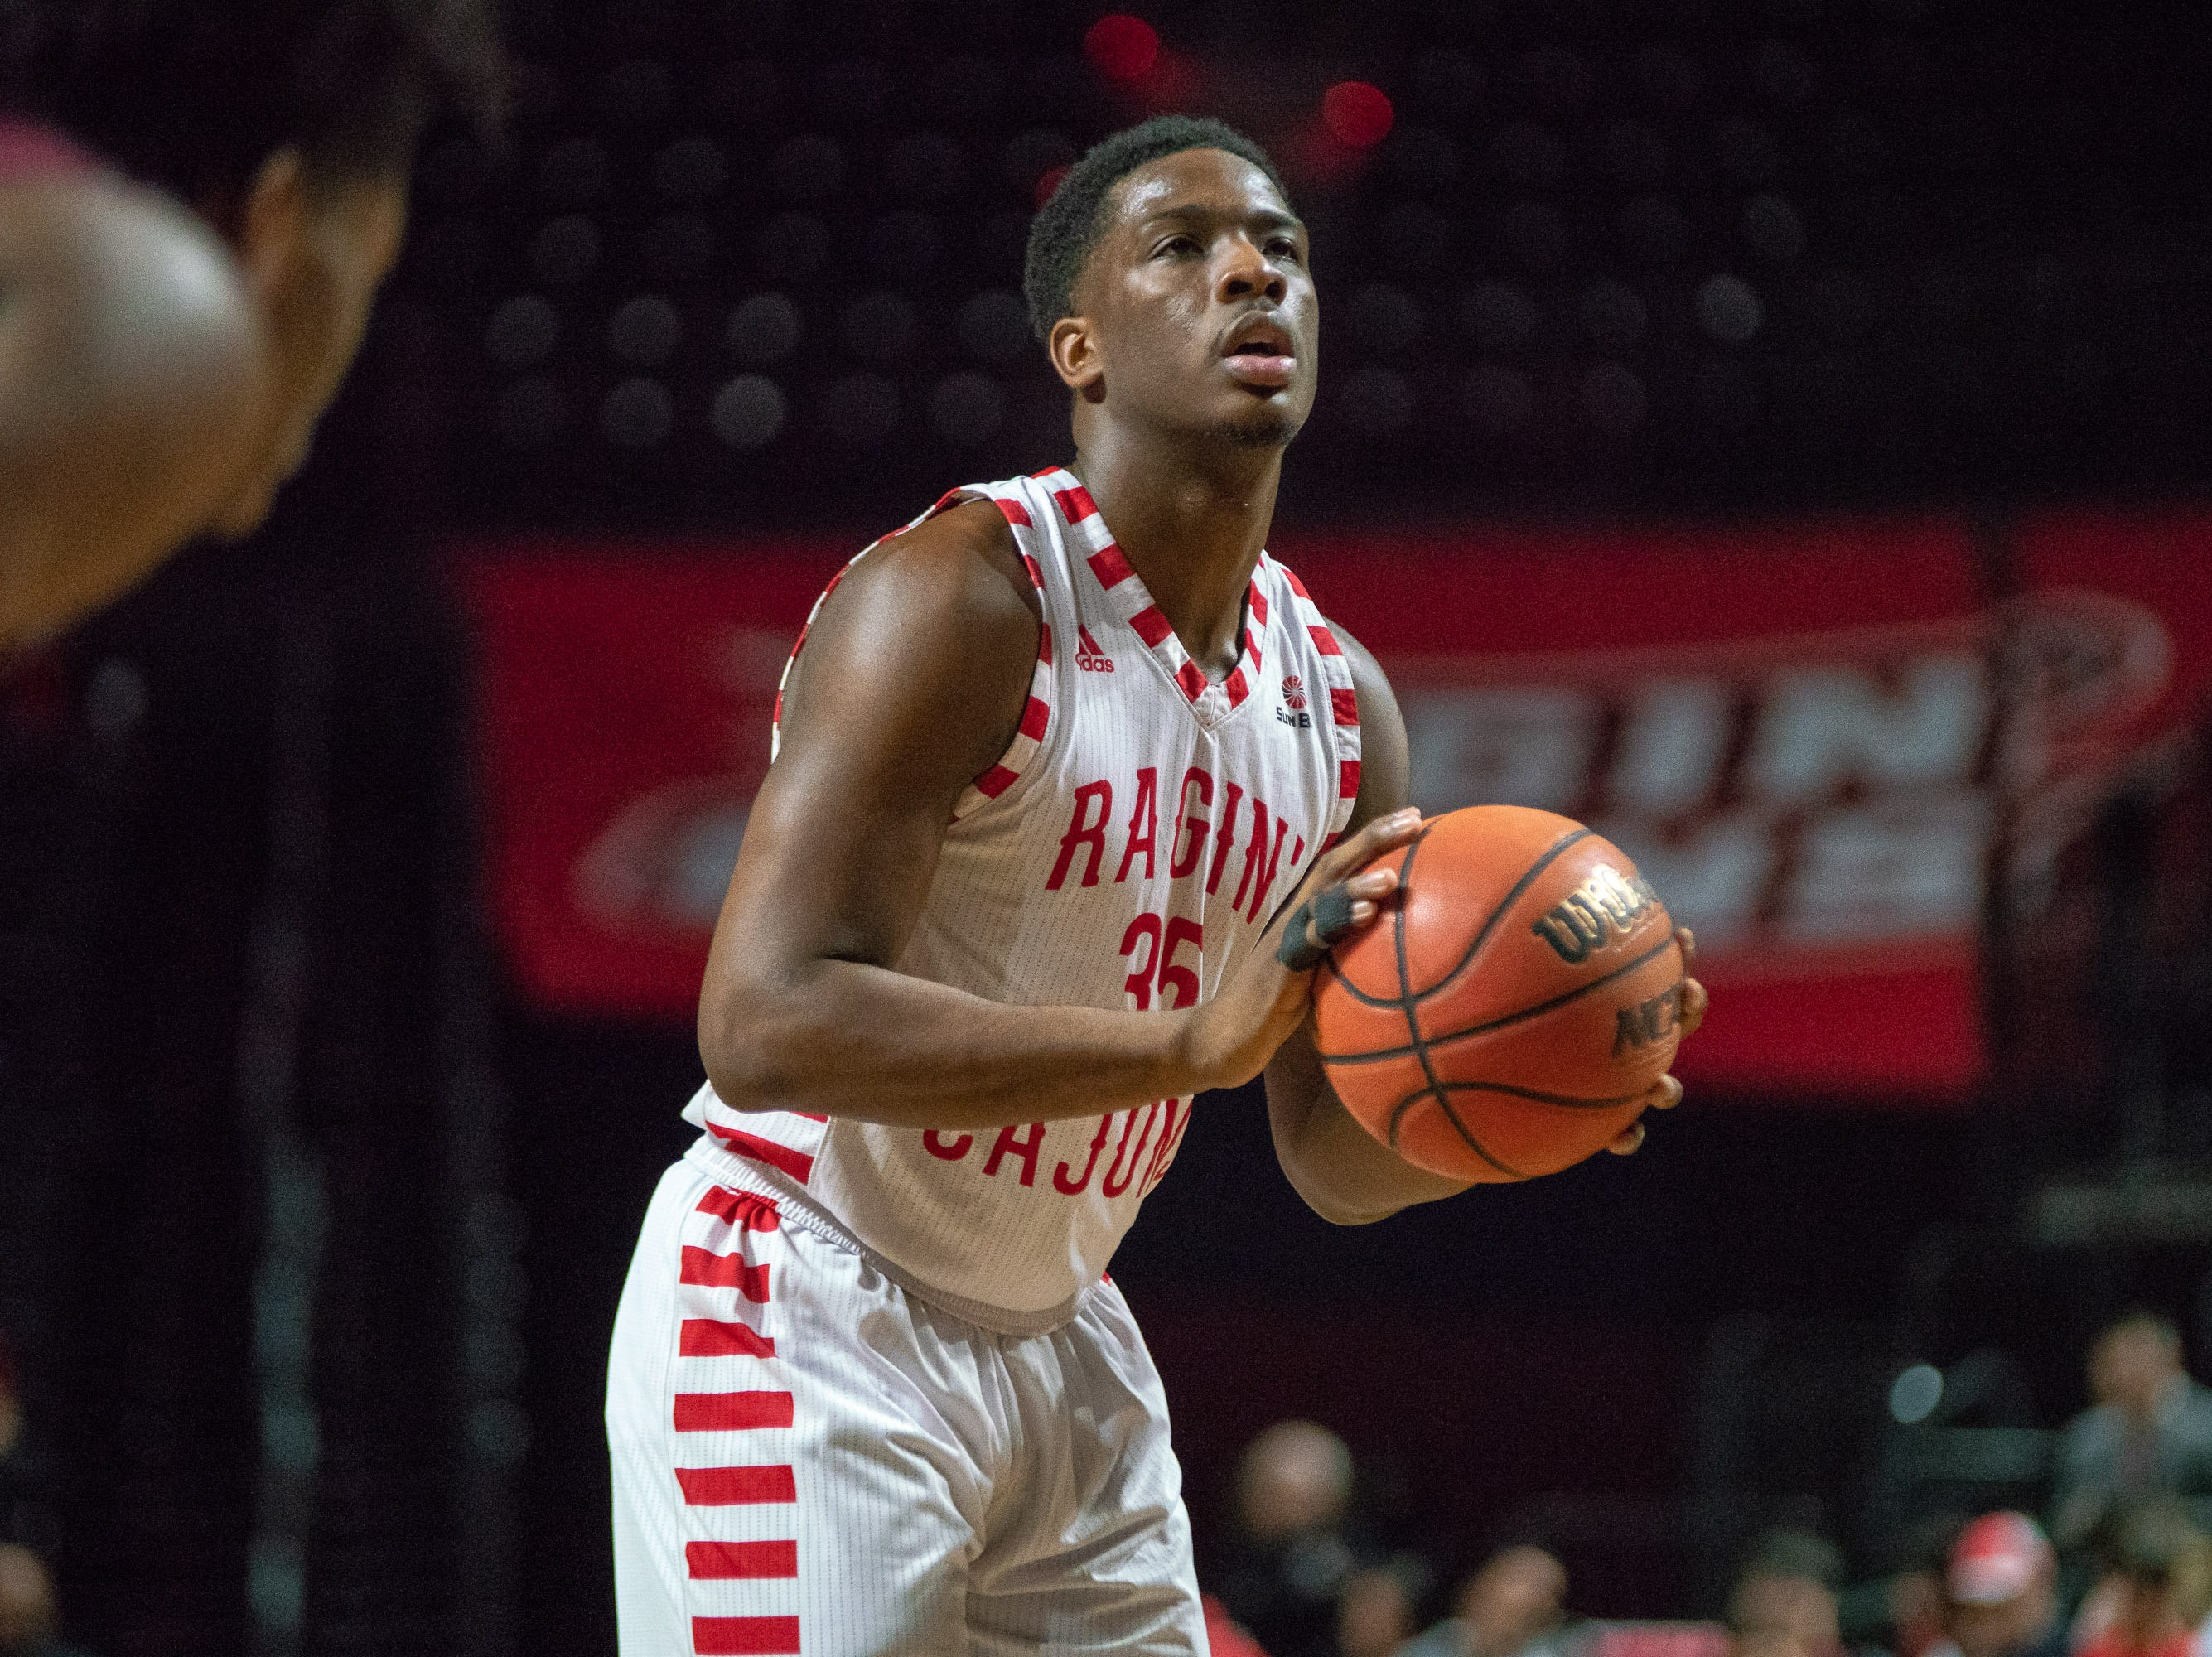 UL's Marcus Stroman shoots from the foul line as the Ragin' Cajuns take on the Little Rock Trojans at the Cajundome on January 5, 2019.